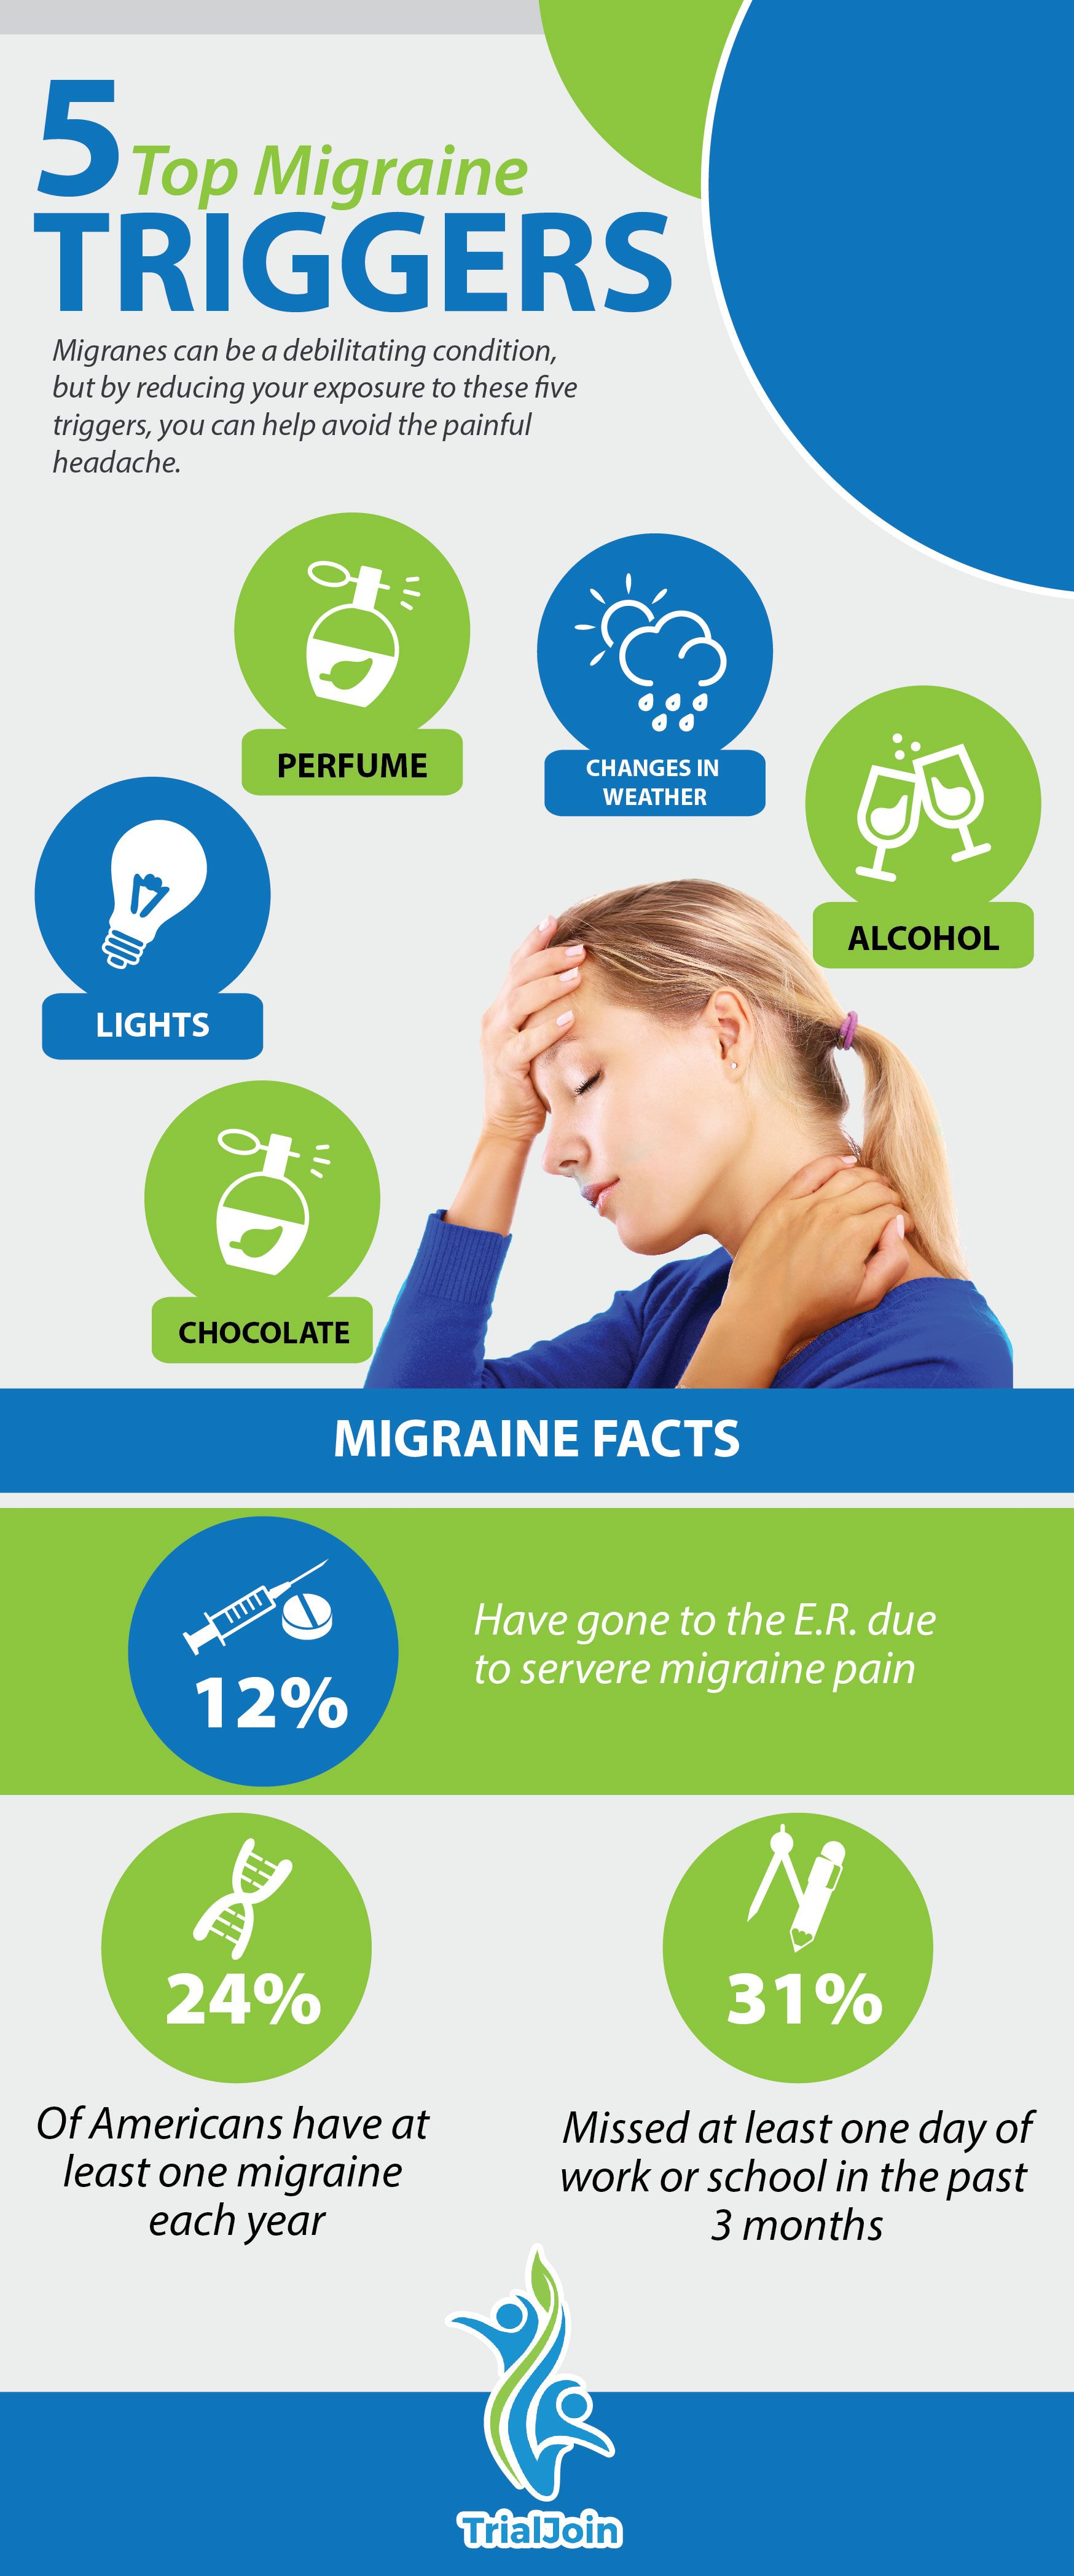 #Migraine can be debilitating condition, but by reducing your exposure to these five triggers, you can help avoid the painful headache | www.trialjoin.com